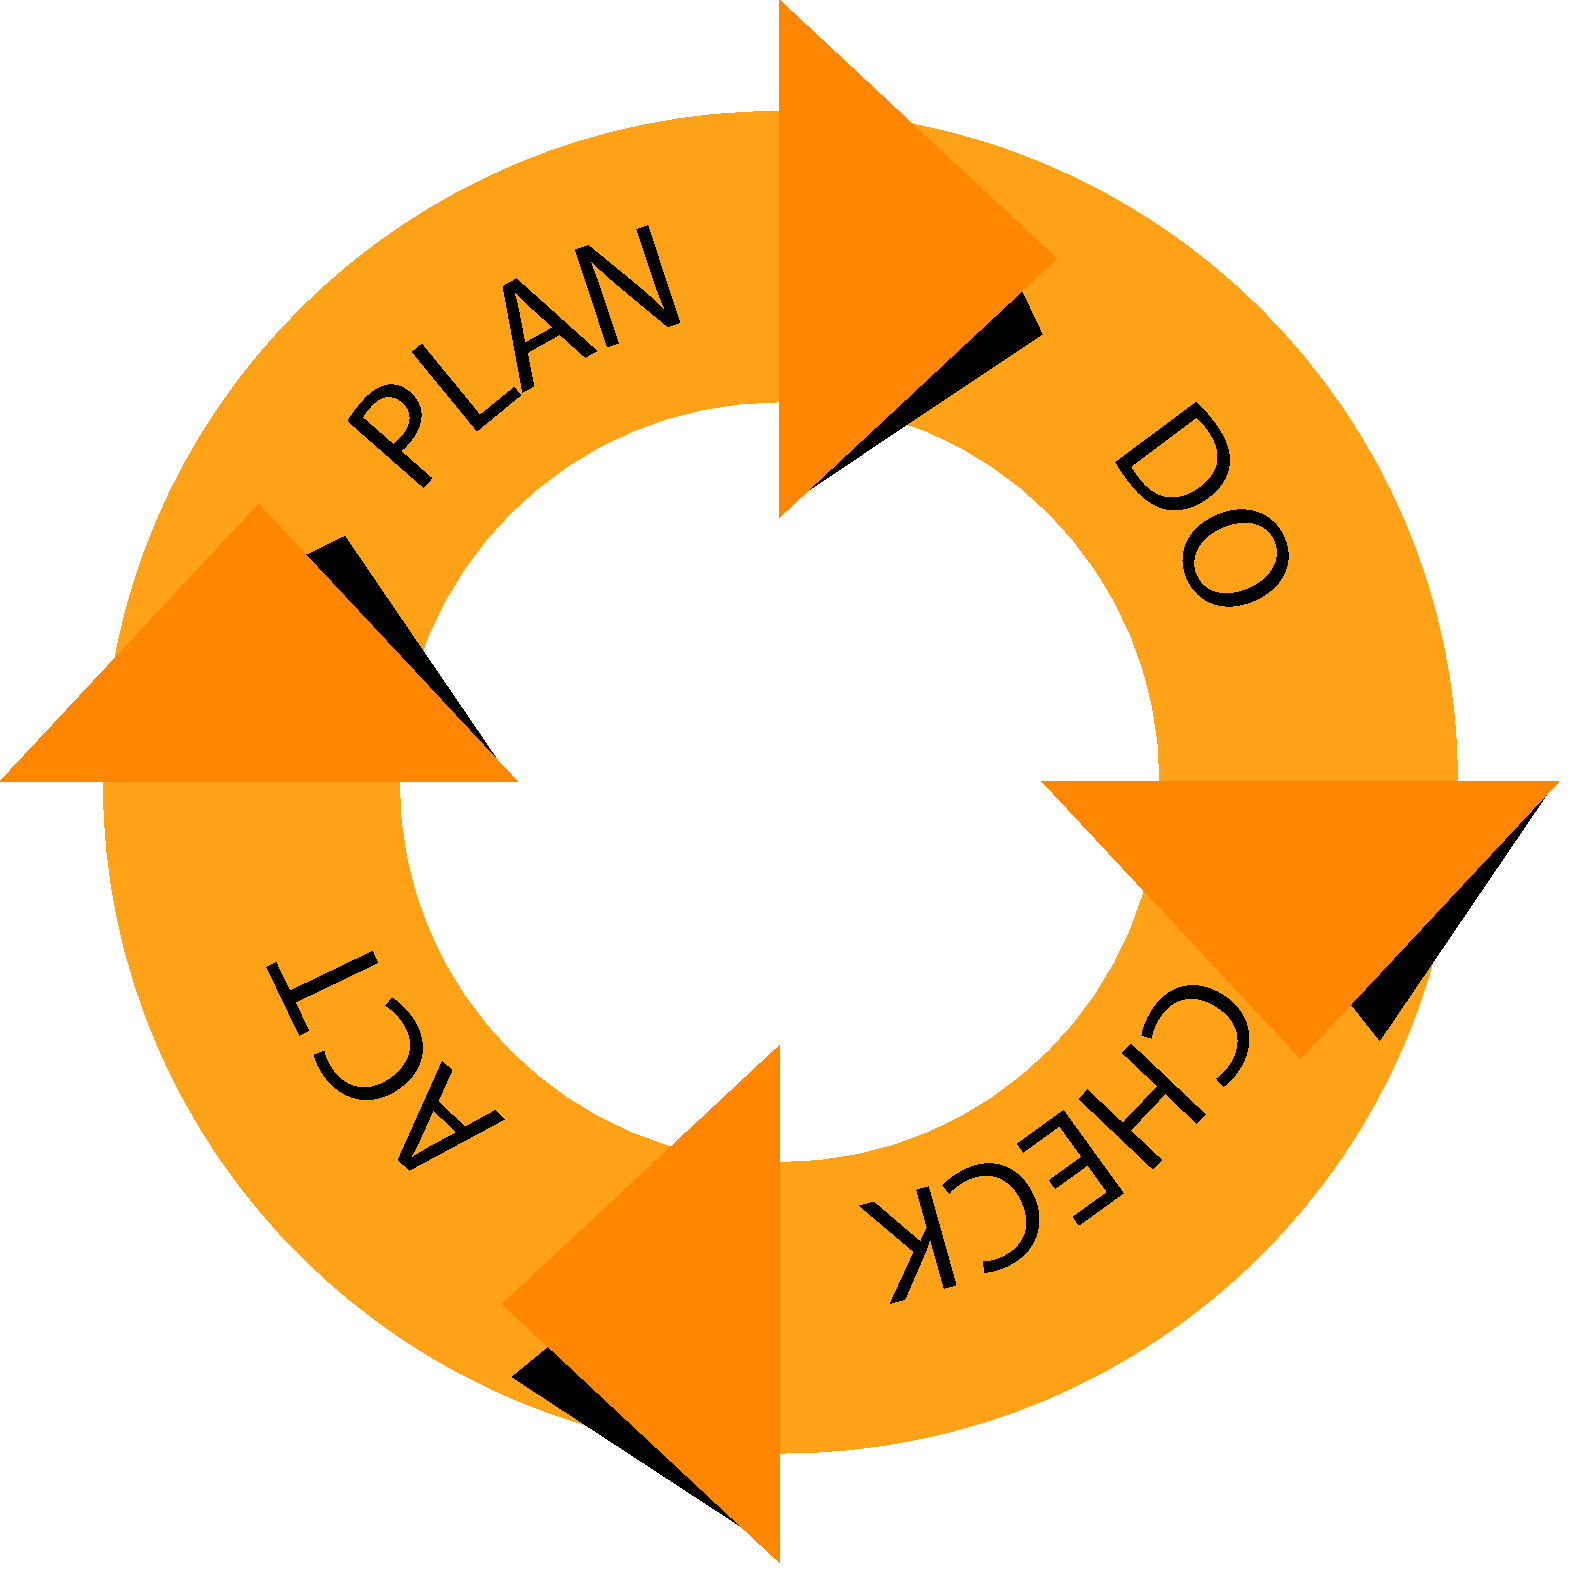 The PDCA checklist ensures successful improvements